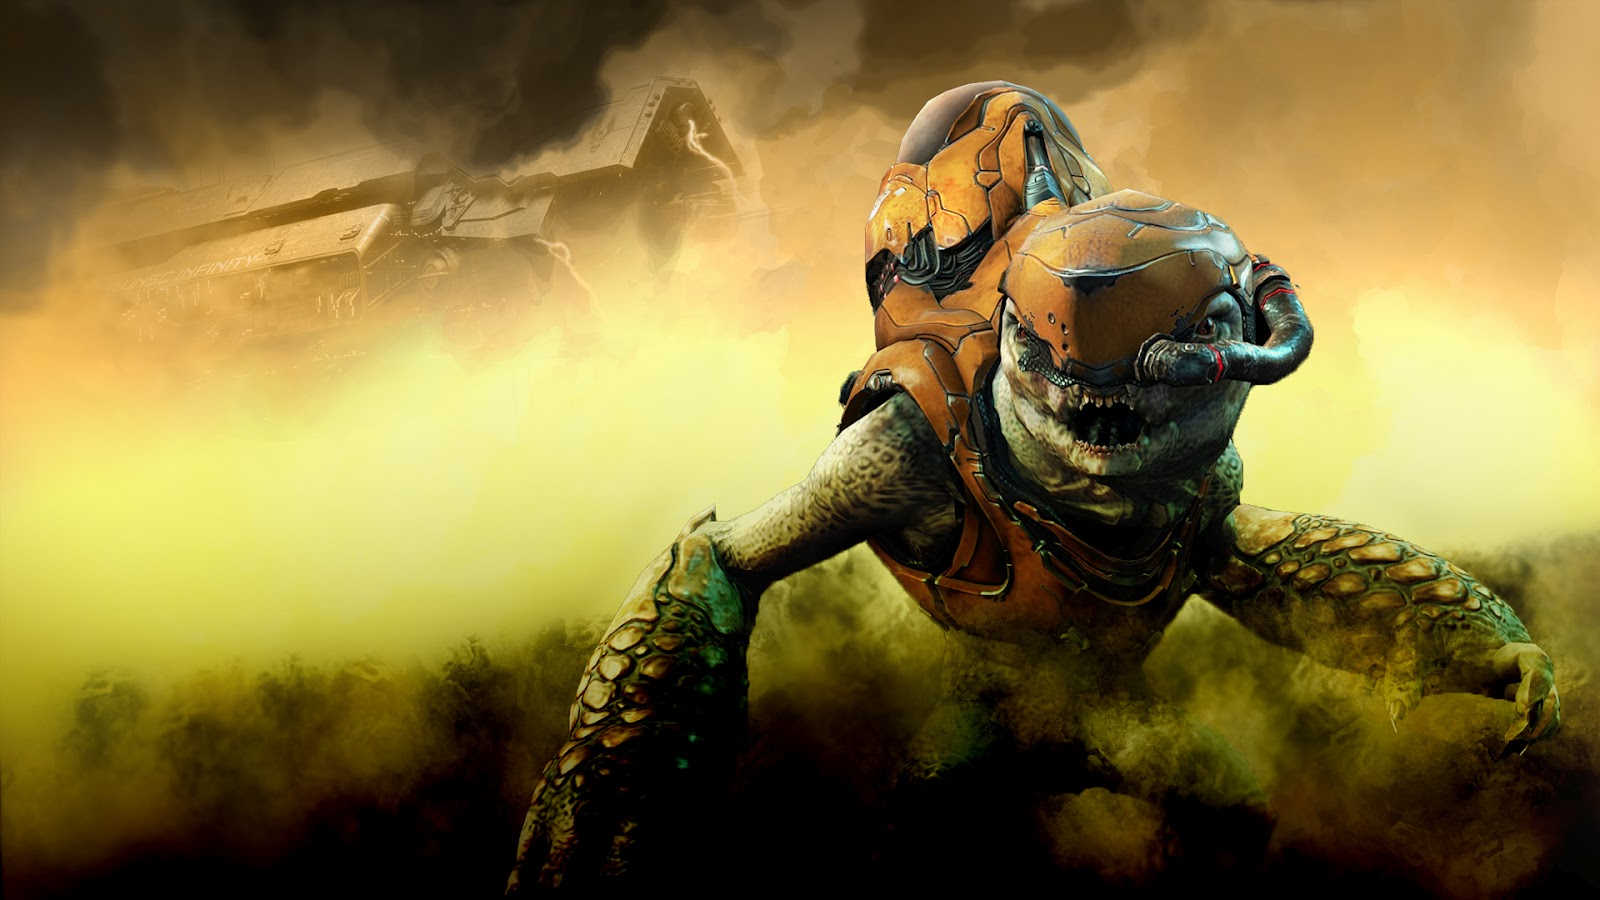 Cool Halo 4 Wallpapers Wallpaper